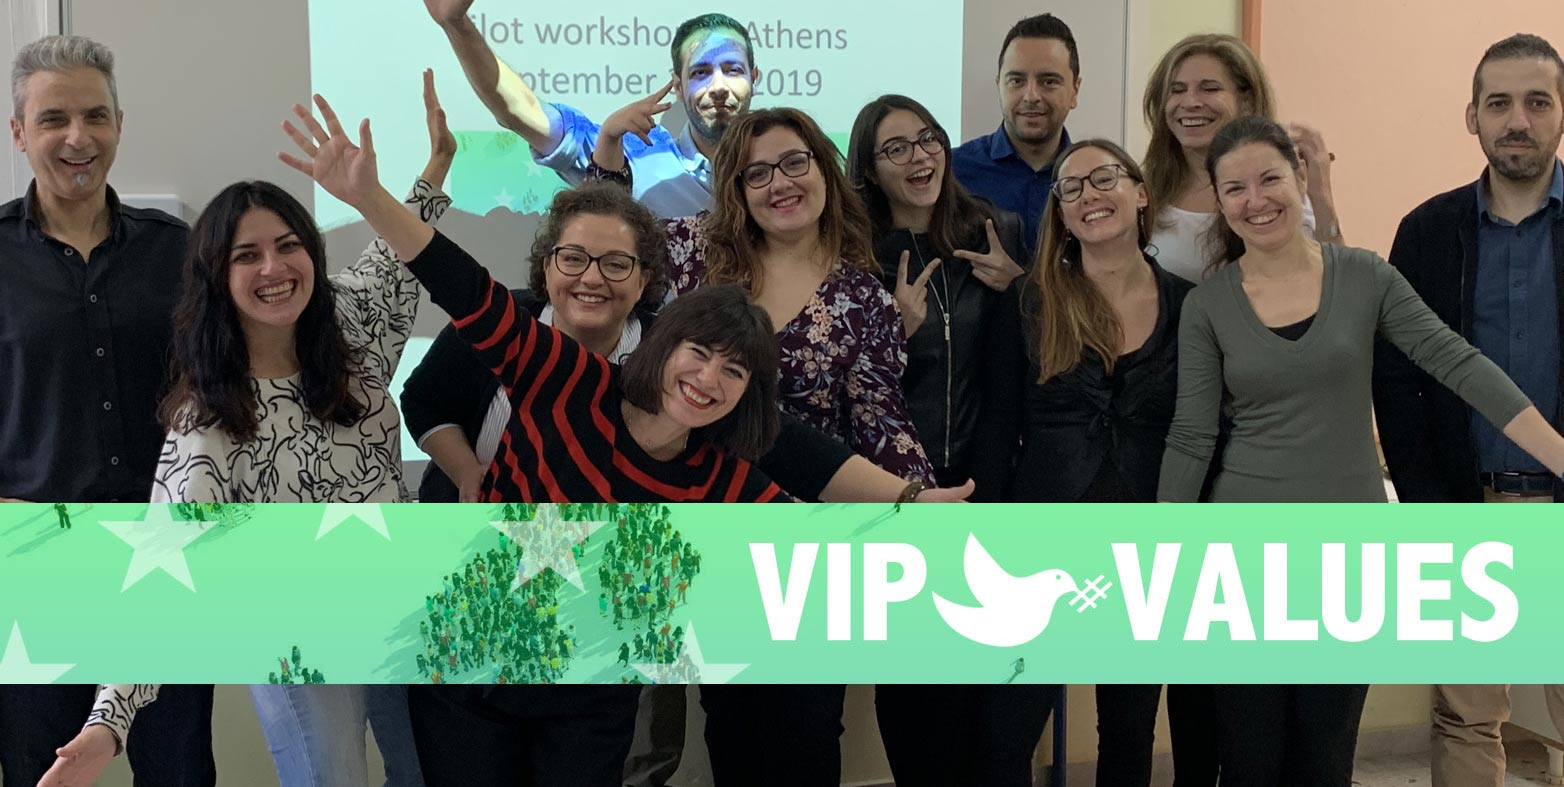 VIP Values ​​Pilot Experiences: Good technology and peace practices for refugees and migrants